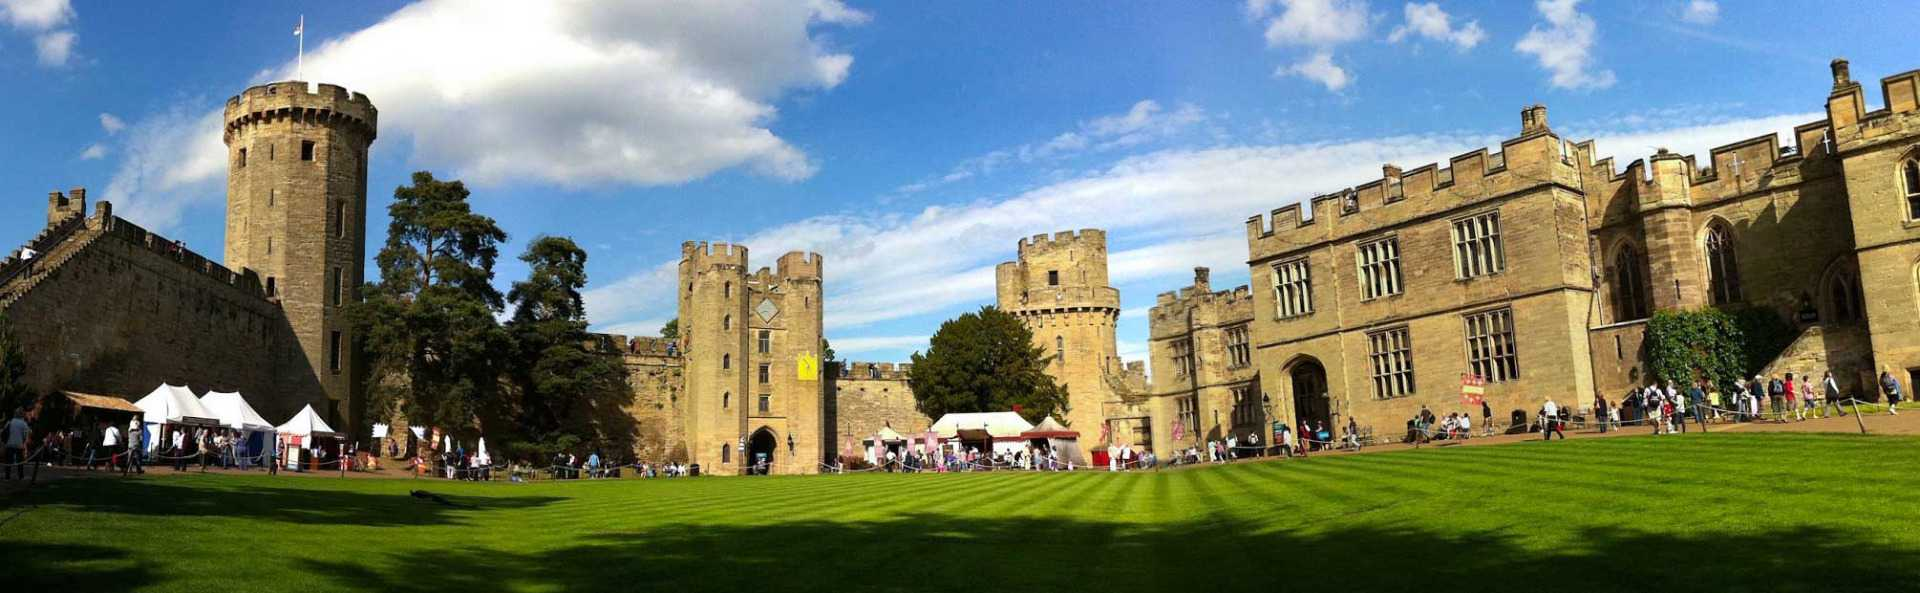 Warwick Castle Front Outside Panoramic